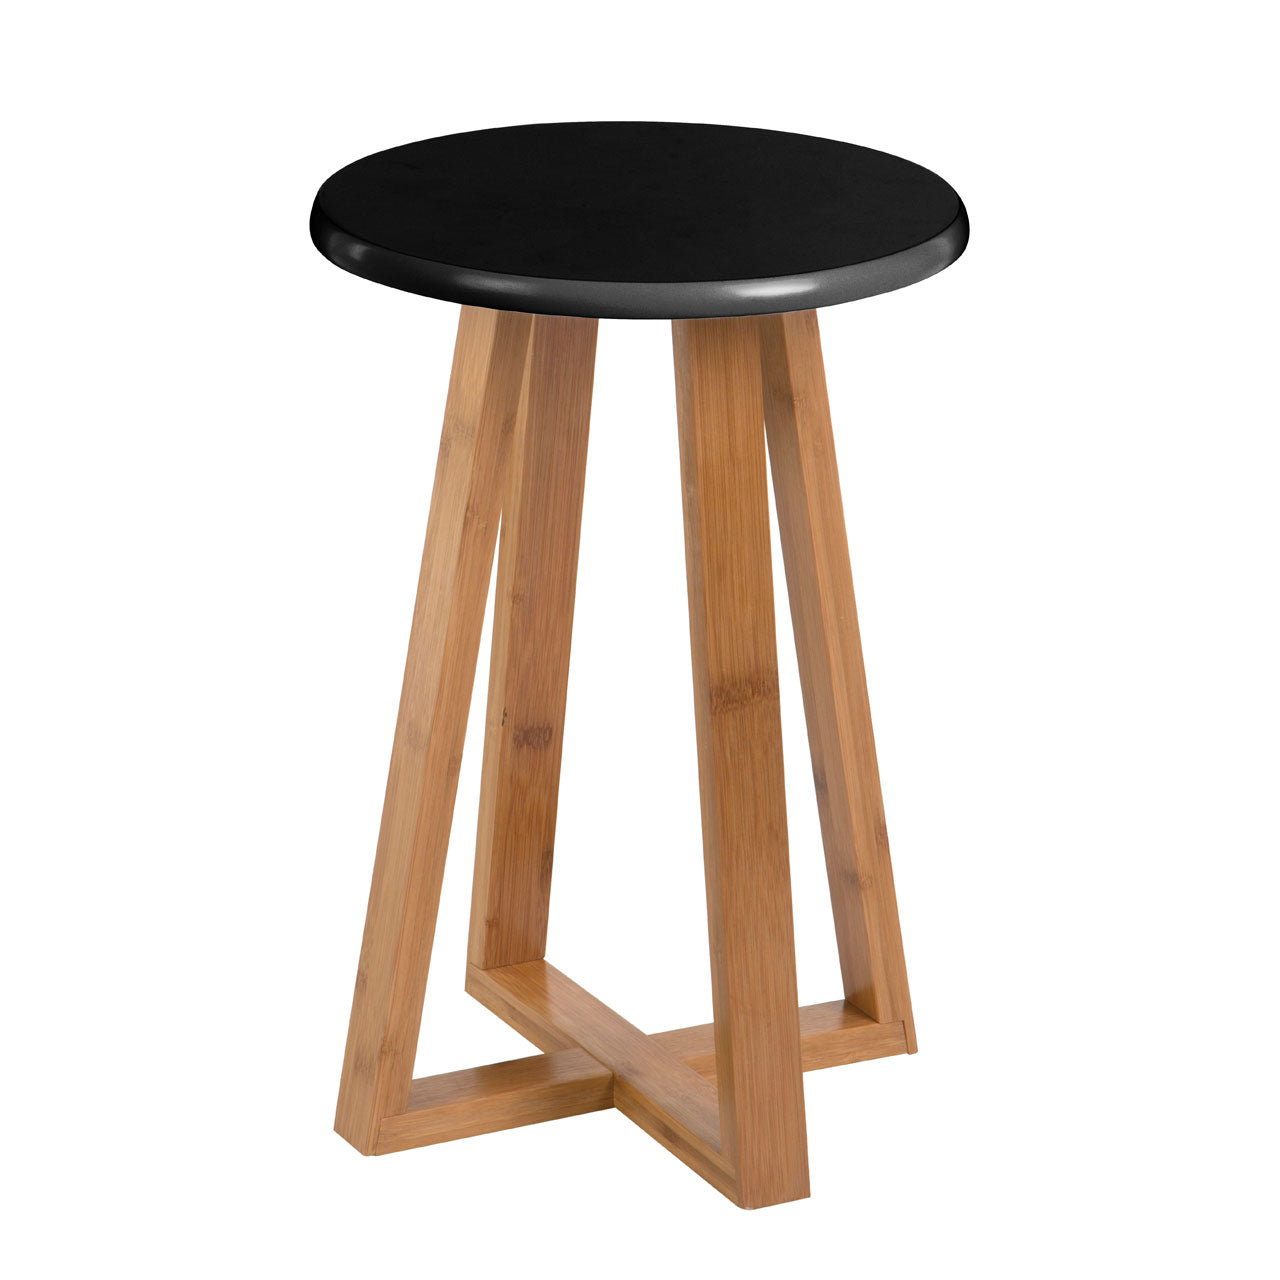 Viborg Round Stool in Black